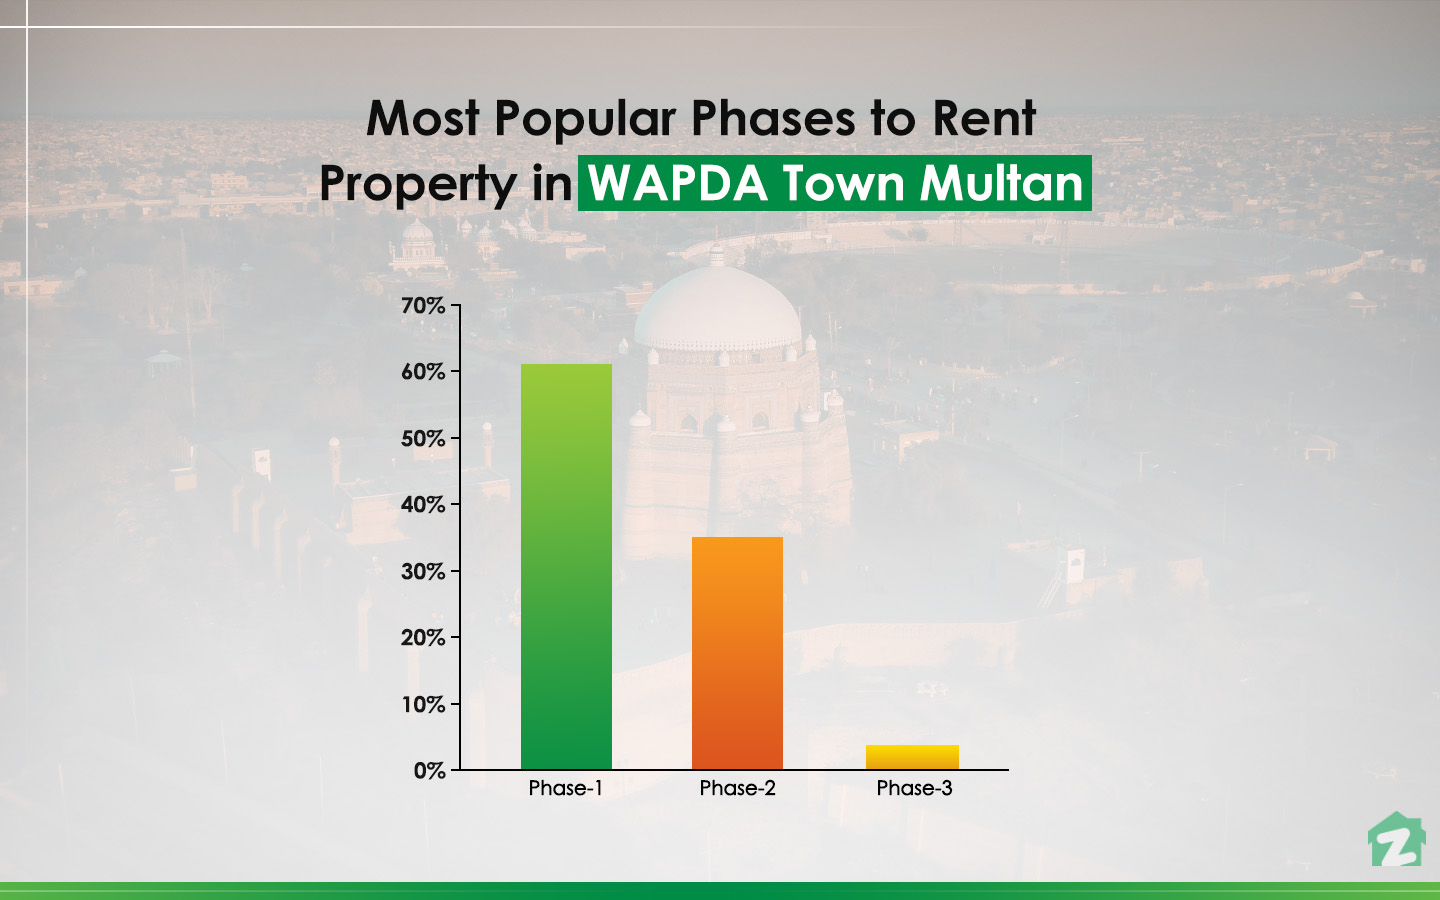 Popular Phases to rent Property in WAPDA Town Multan